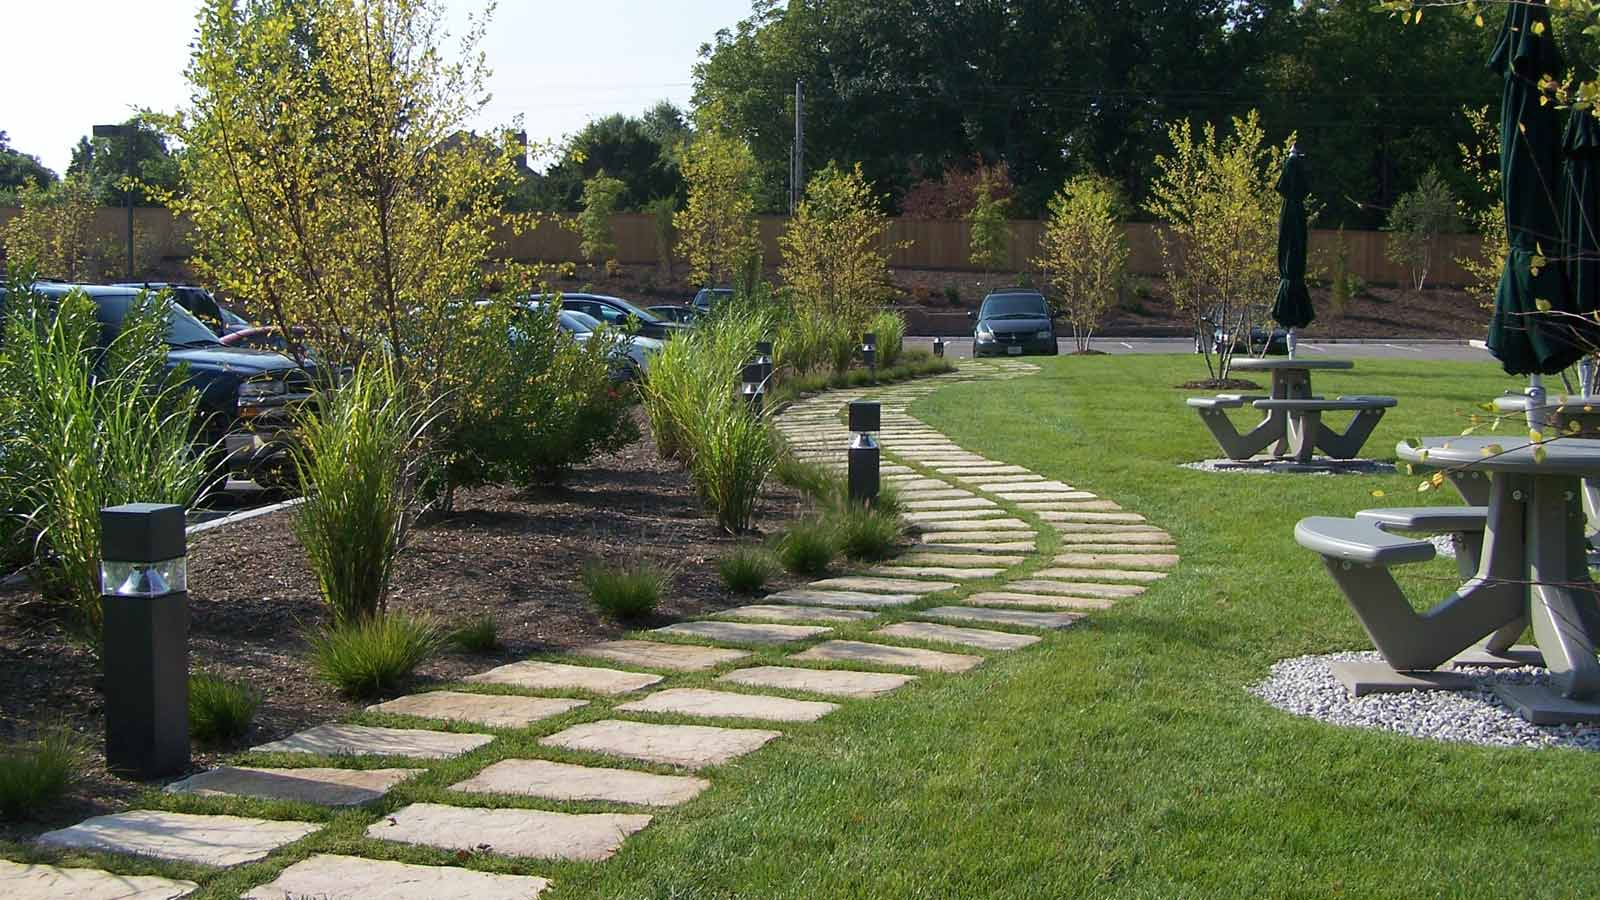 Commercial Landscaping-Mesquite TX Landscape Designs & Outdoor Living Areas-We offer Landscape Design, Outdoor Patios & Pergolas, Outdoor Living Spaces, Stonescapes, Residential & Commercial Landscaping, Irrigation Installation & Repairs, Drainage Systems, Landscape Lighting, Outdoor Living Spaces, Tree Service, Lawn Service, and more.